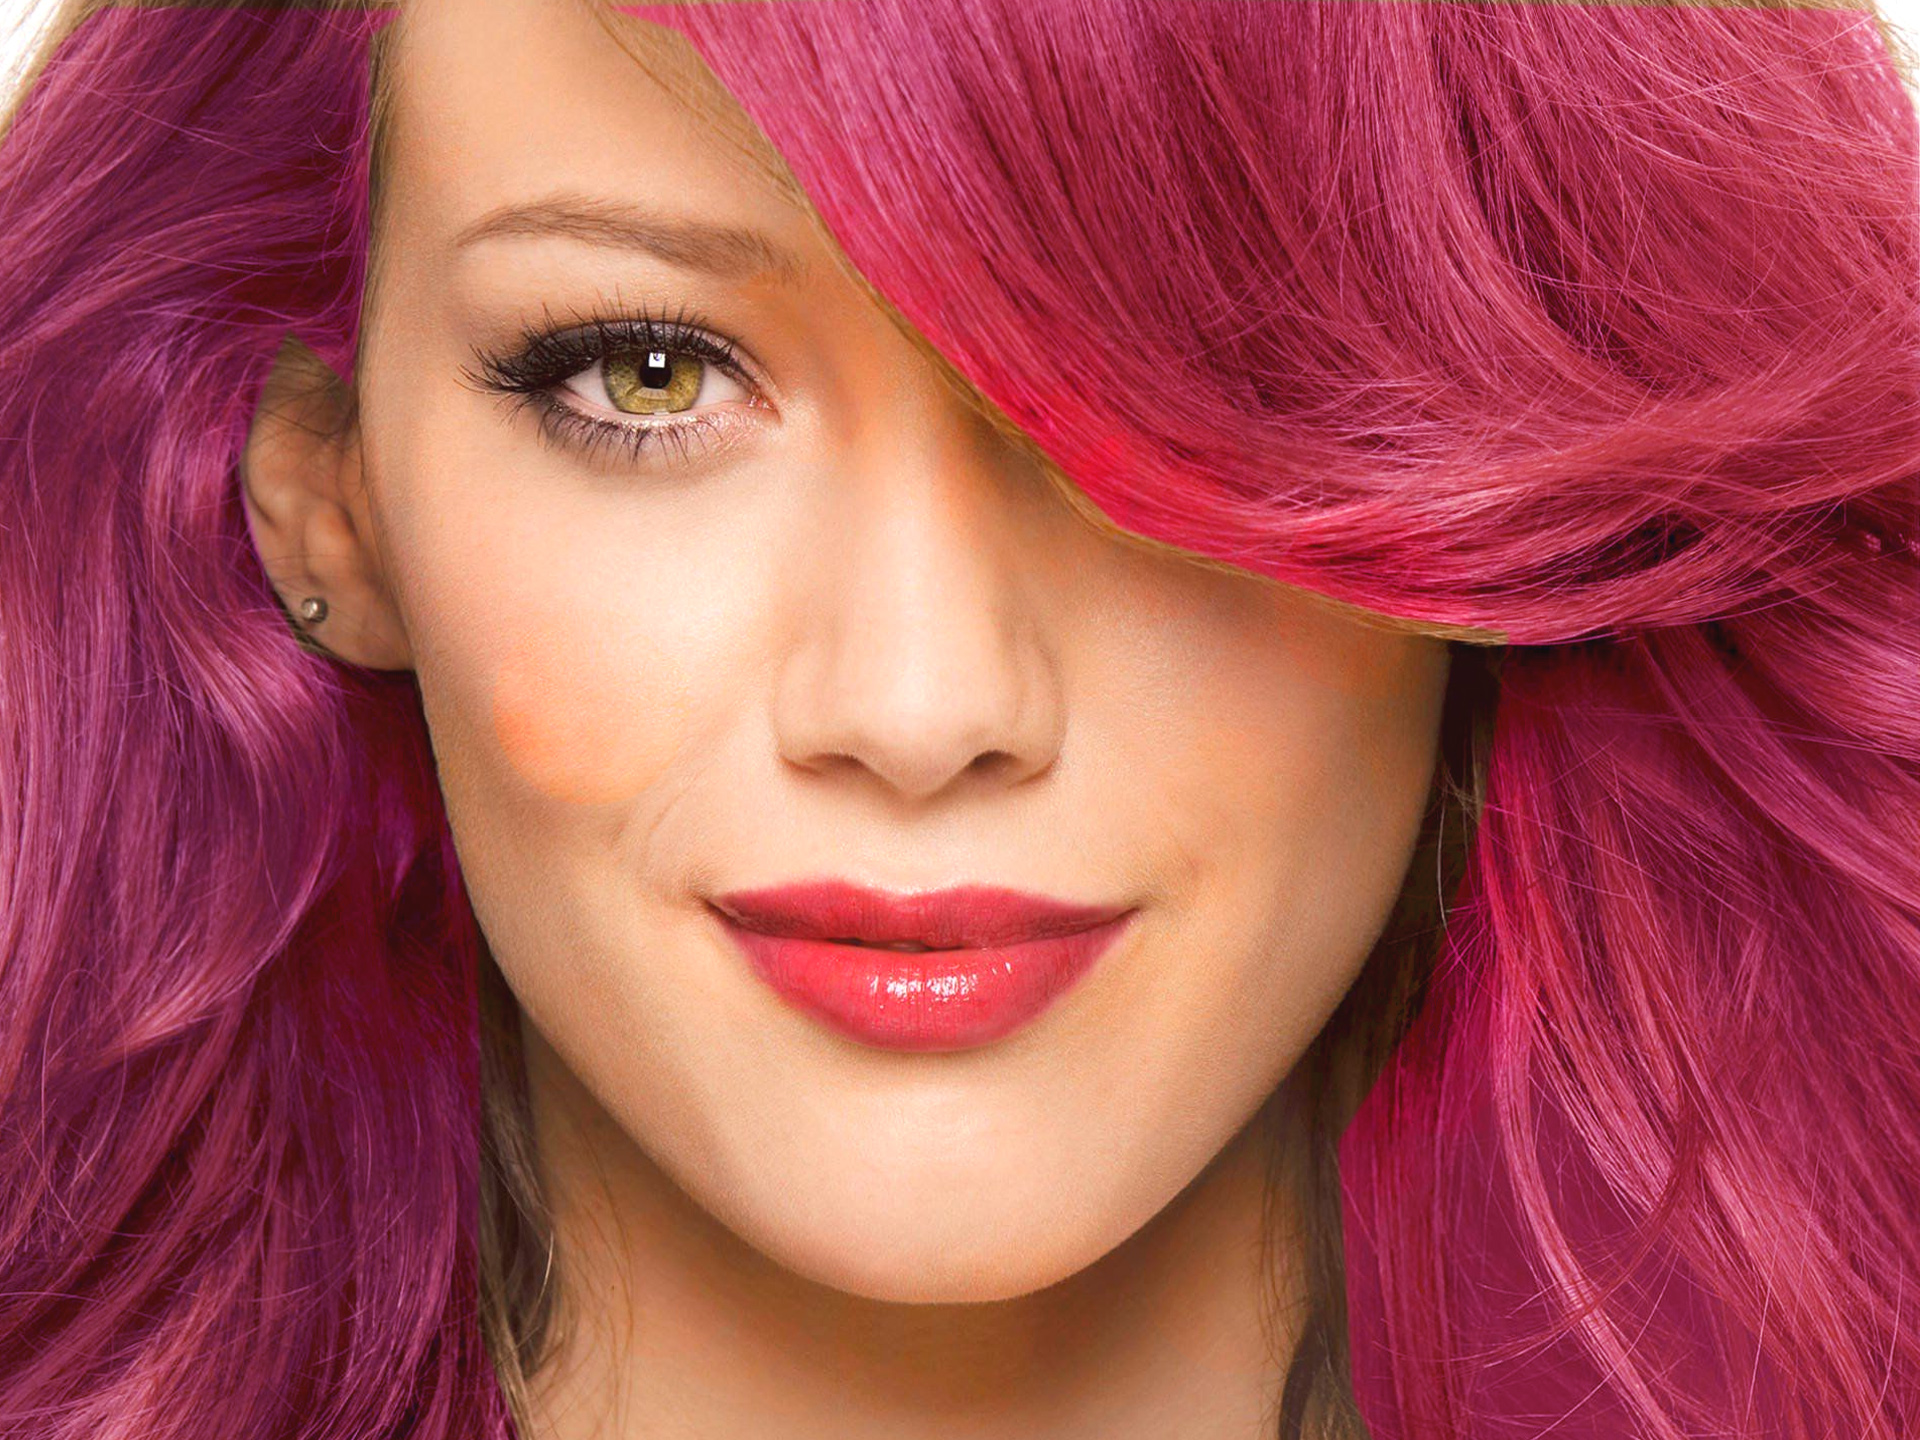 Hair Color Change Brings A Whole New You Out! Here\'s Why. - Tell ...